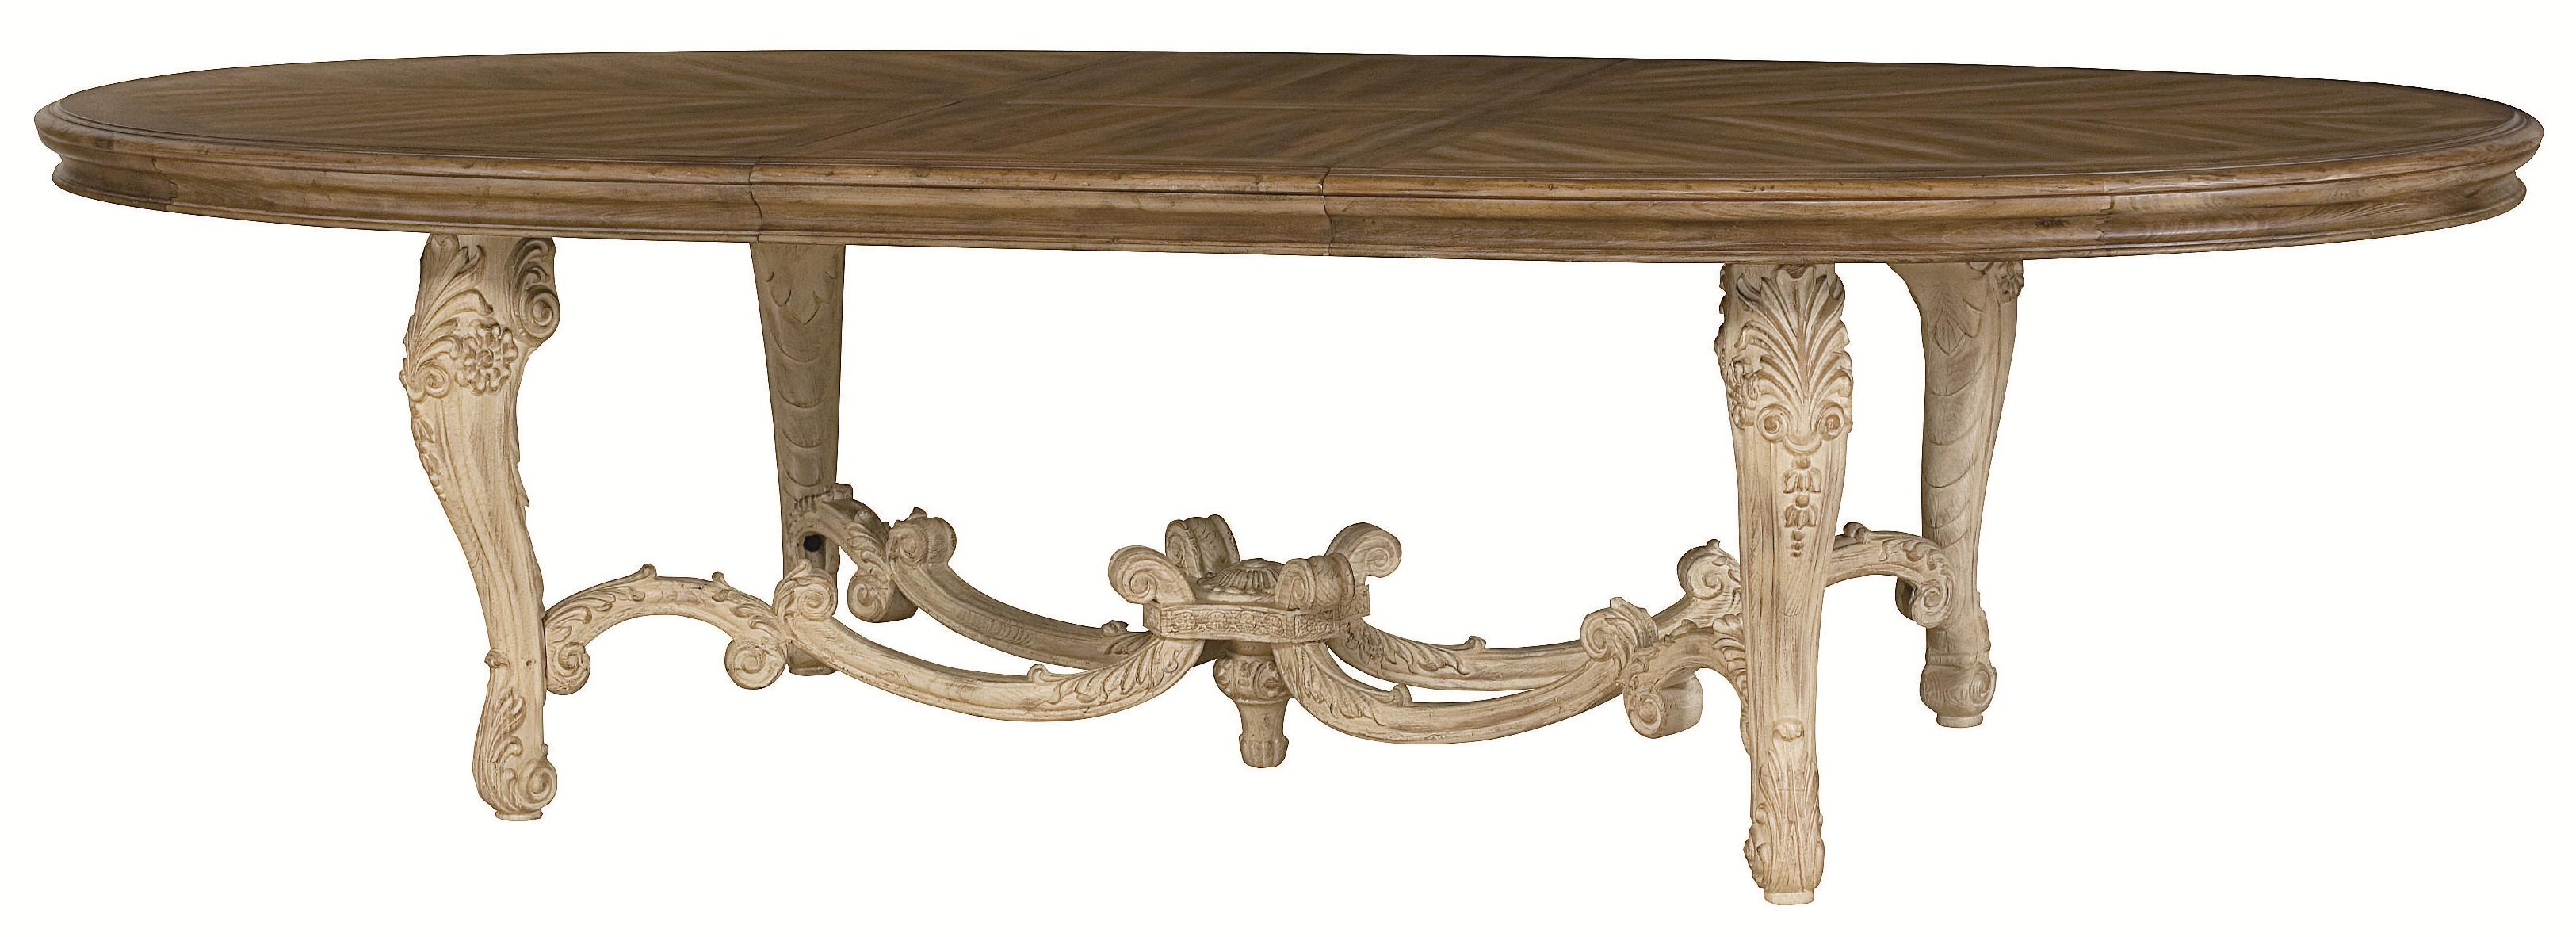 American Drew Jessica McClintock Home   The Boutique Collection Oval Dining  Table   Item Number: